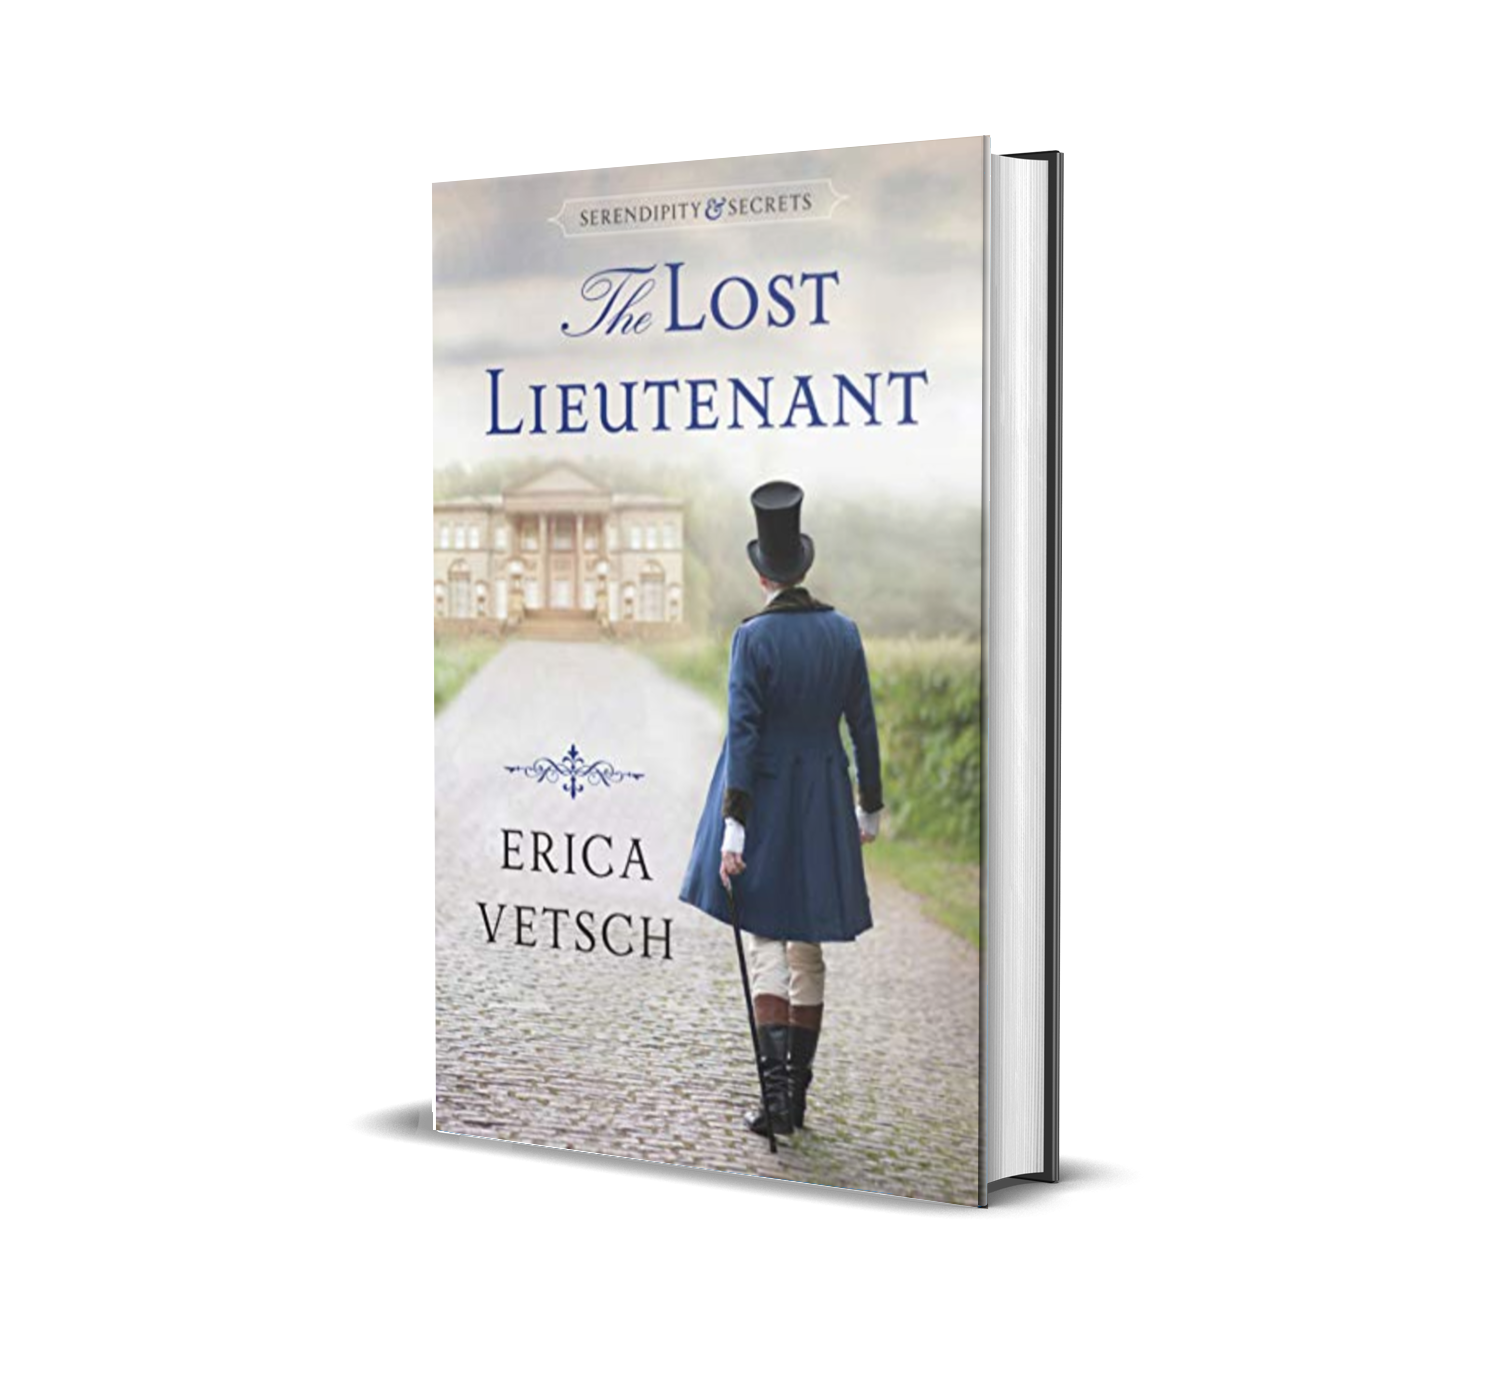 The Lost Lieutenant